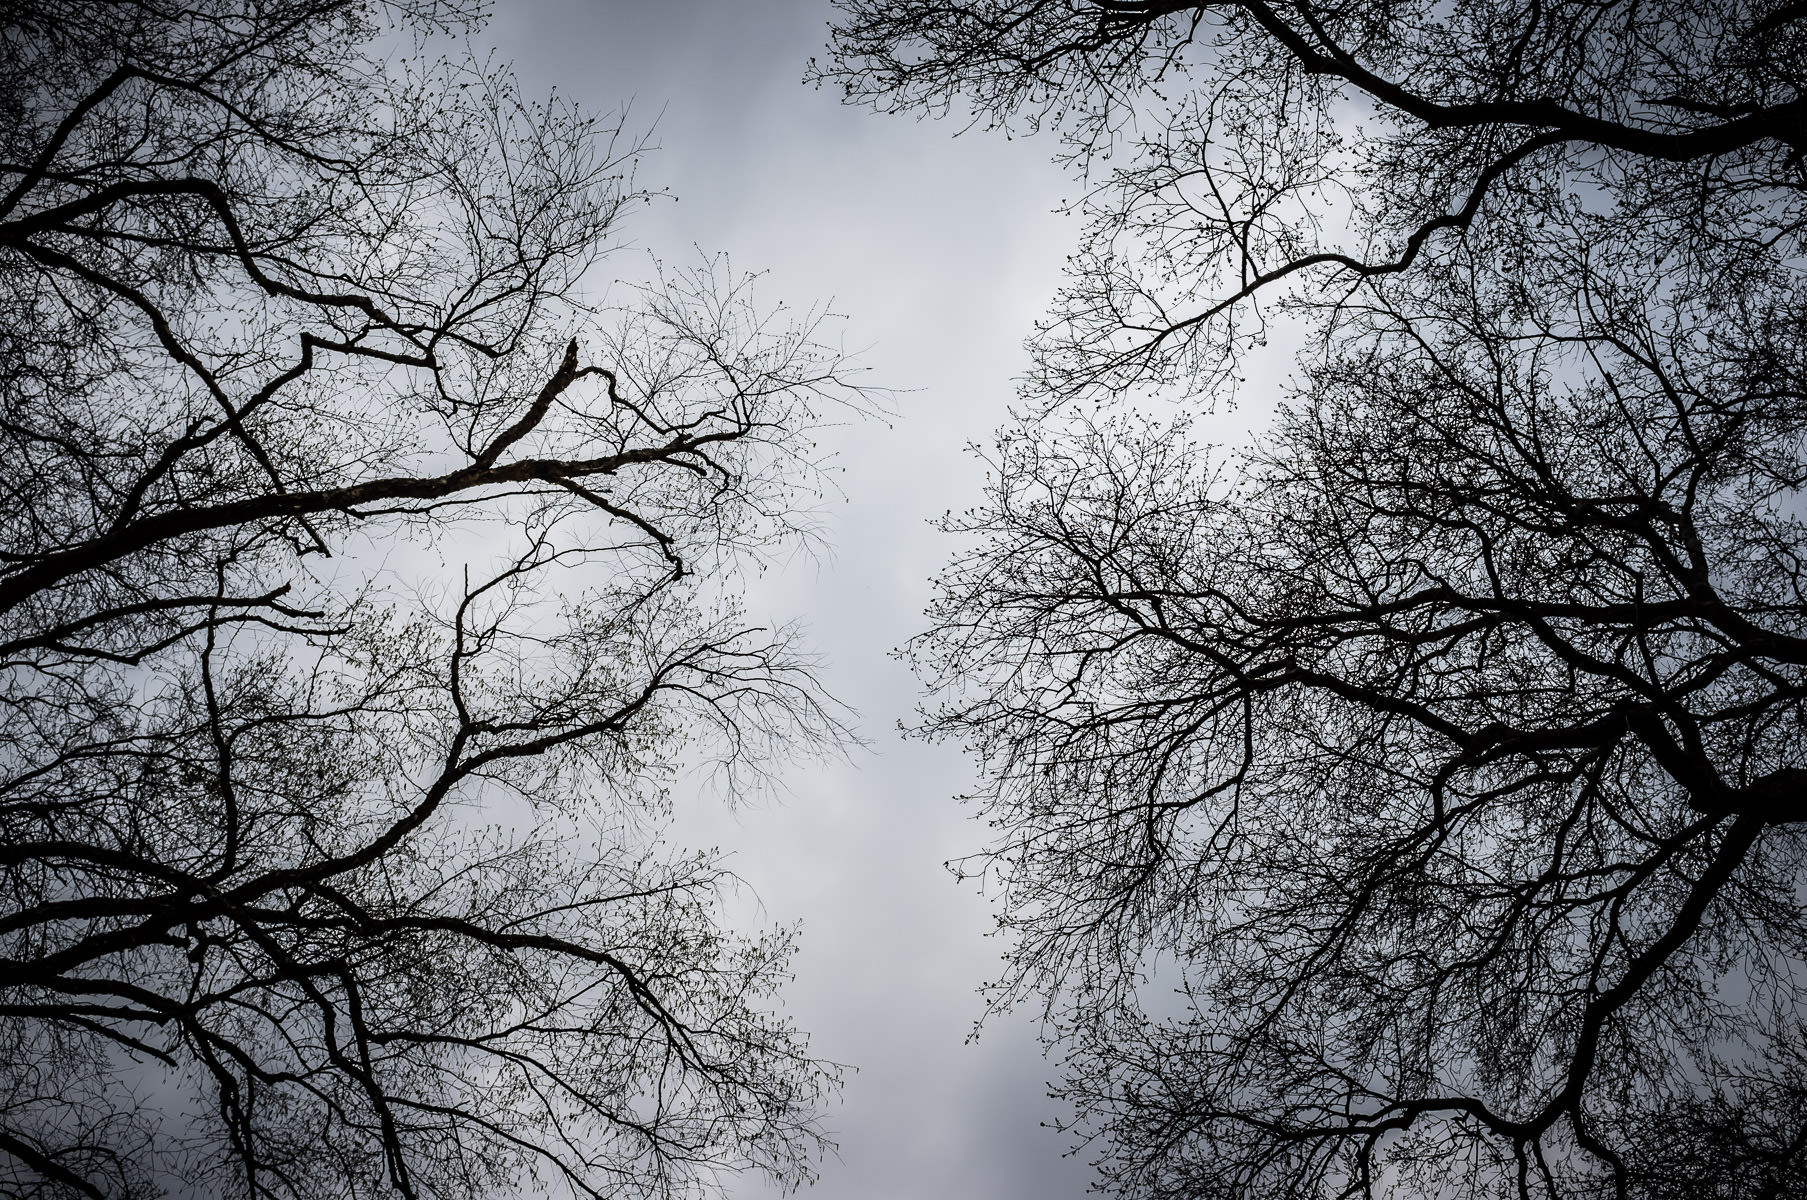 Two trees' branches reach towards one another on an overcast day in Gladewater, Texas.